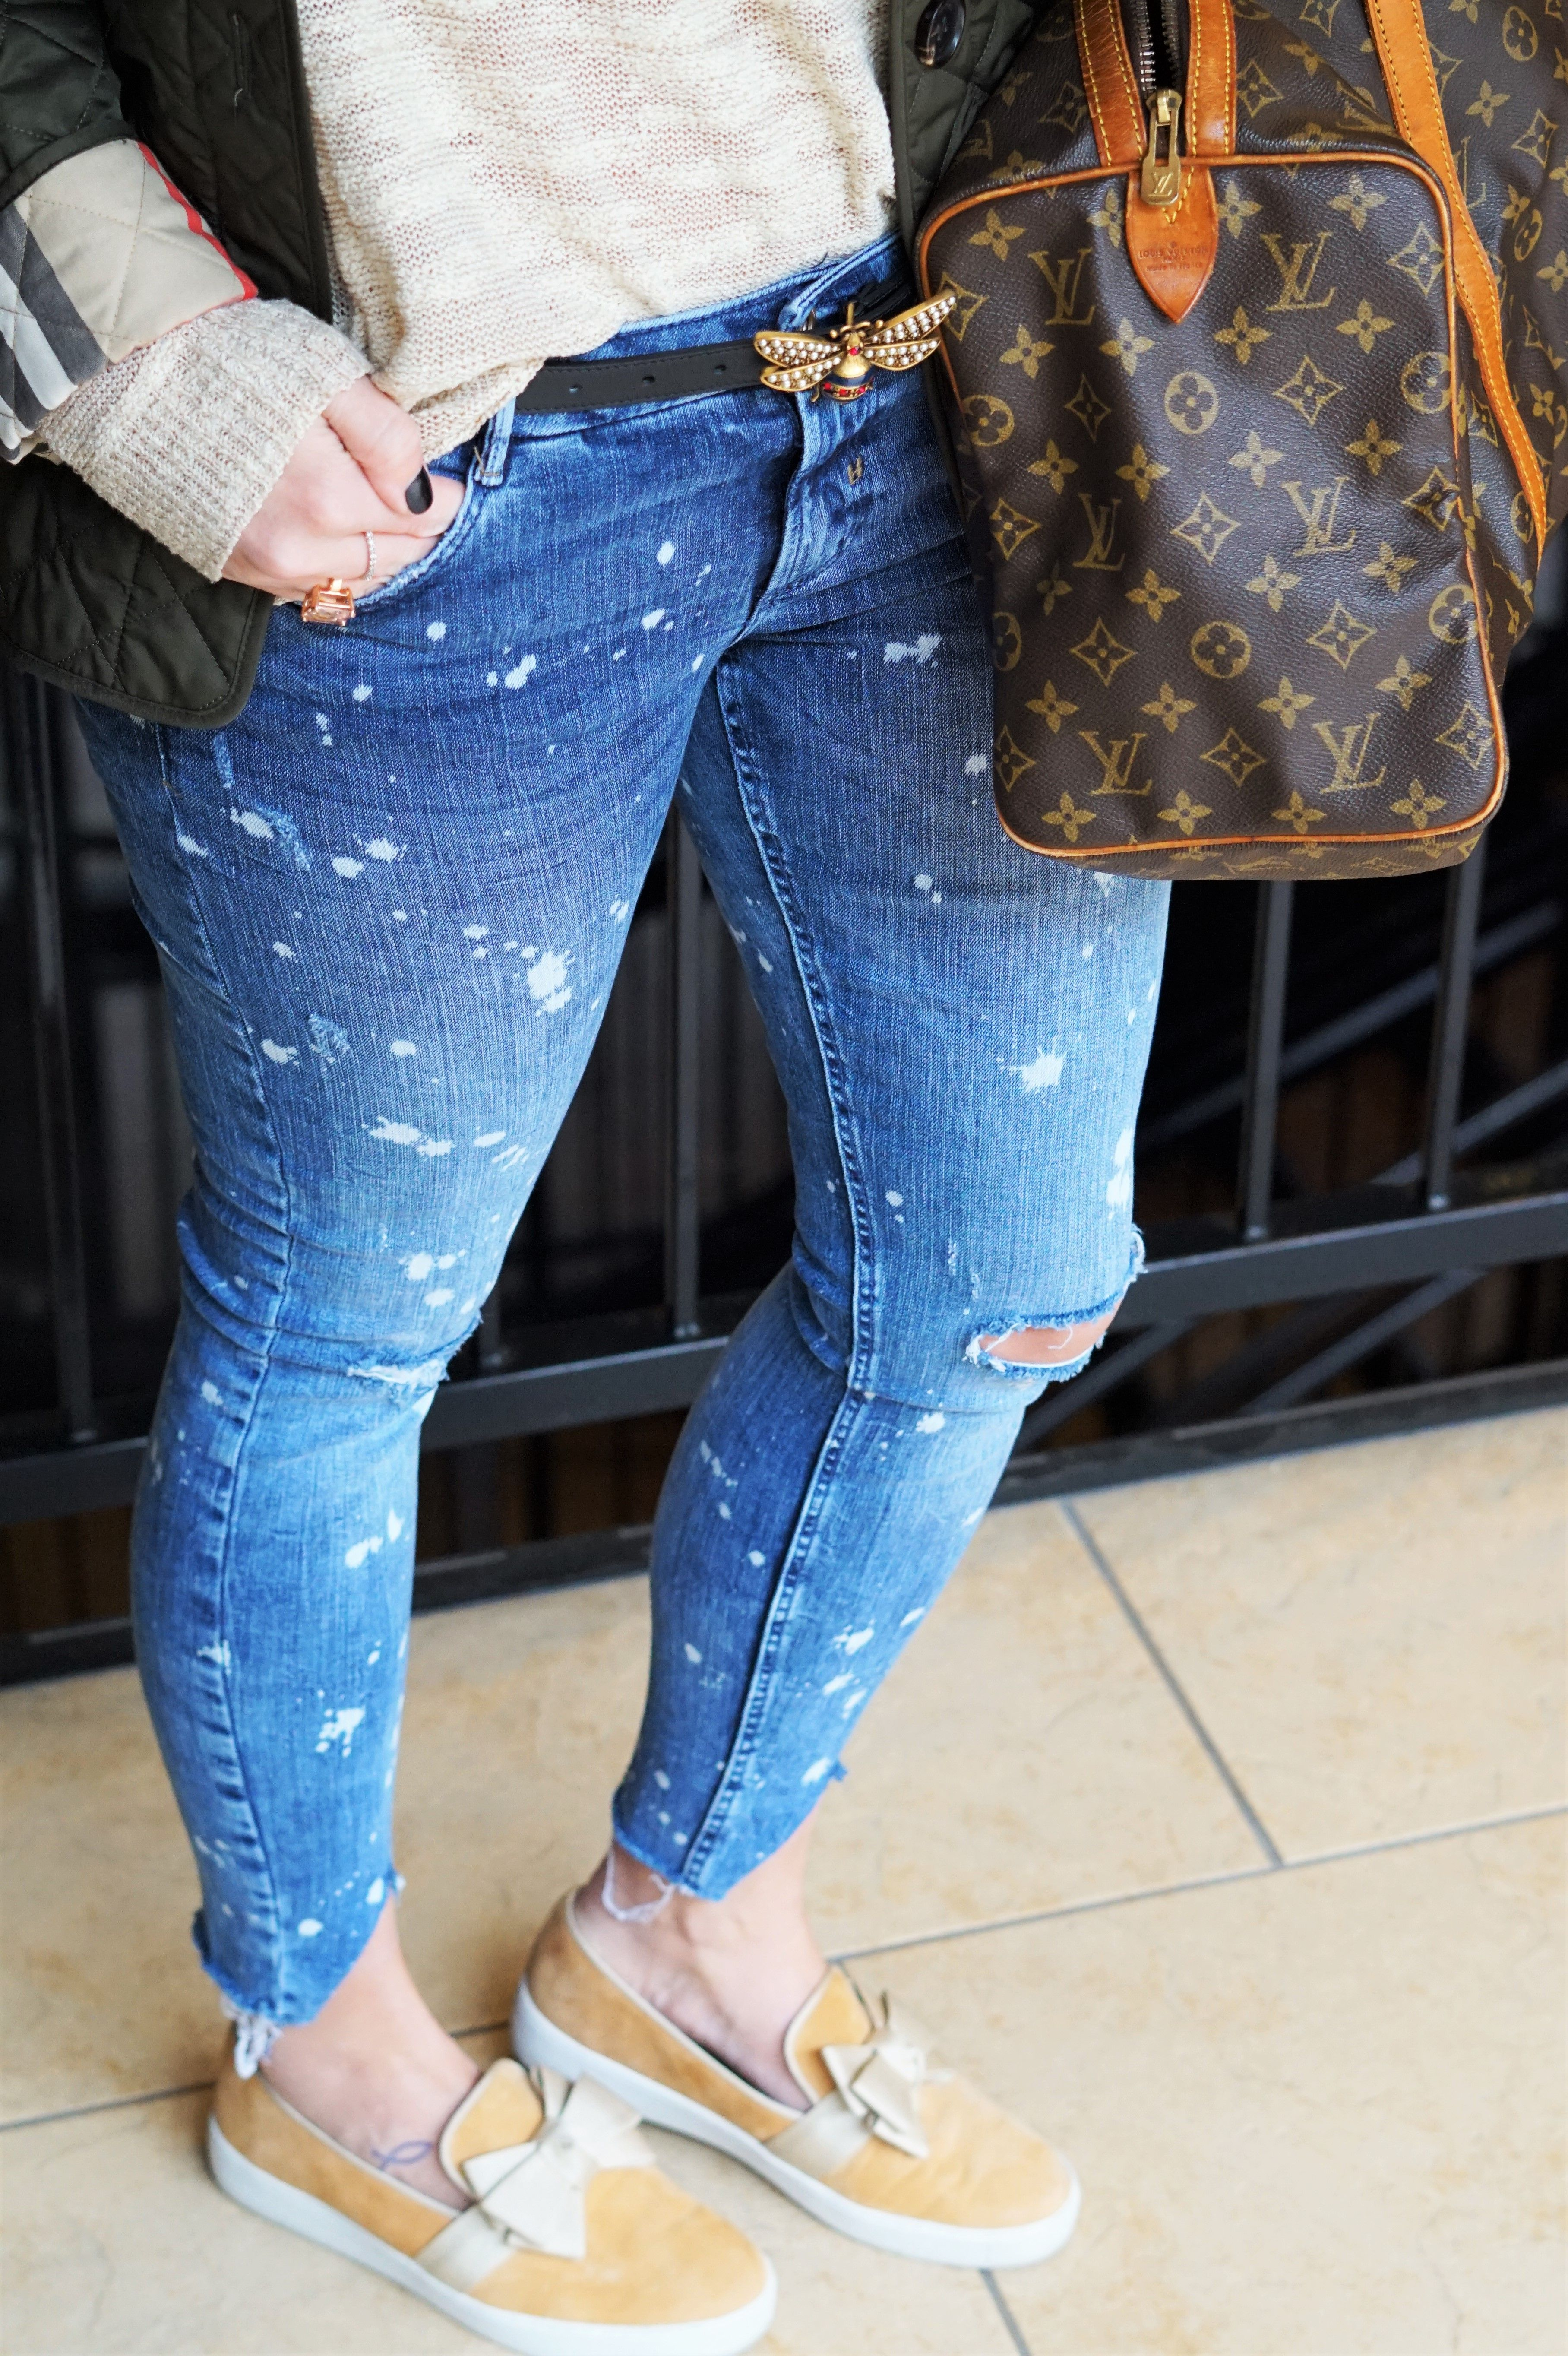 b0adc8f287de7 Super distressed jeans from Zara    Vintage Louis Vuitton Handbag   Luggage     Gucci Queen Margaret Leather belt    Gucci Bumble Bee Belt    Olive  Green ...